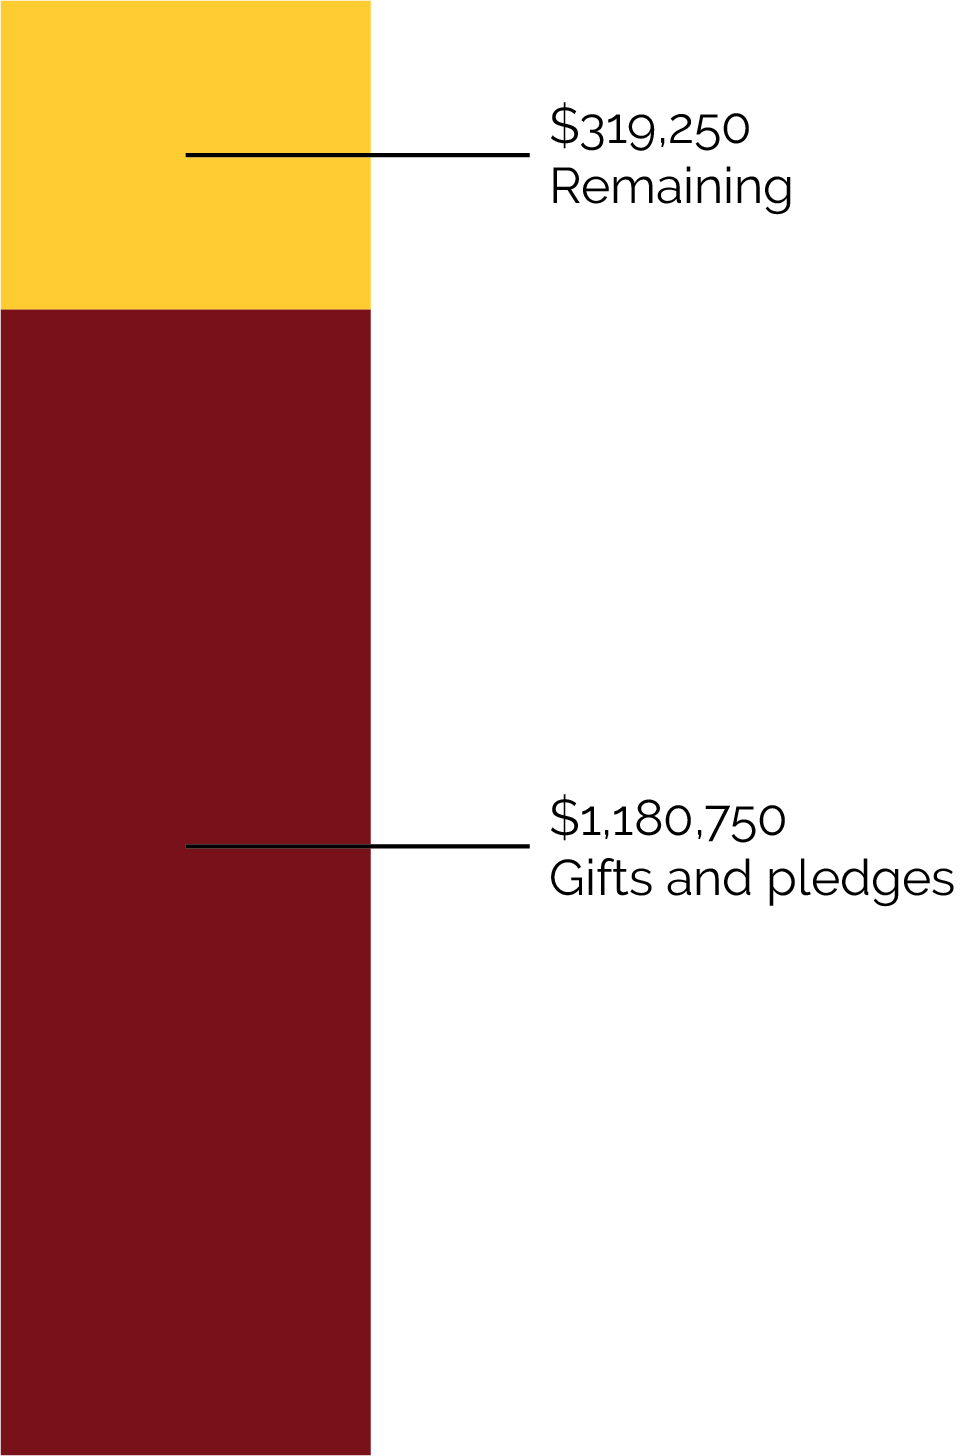 Chart of fundraising progress